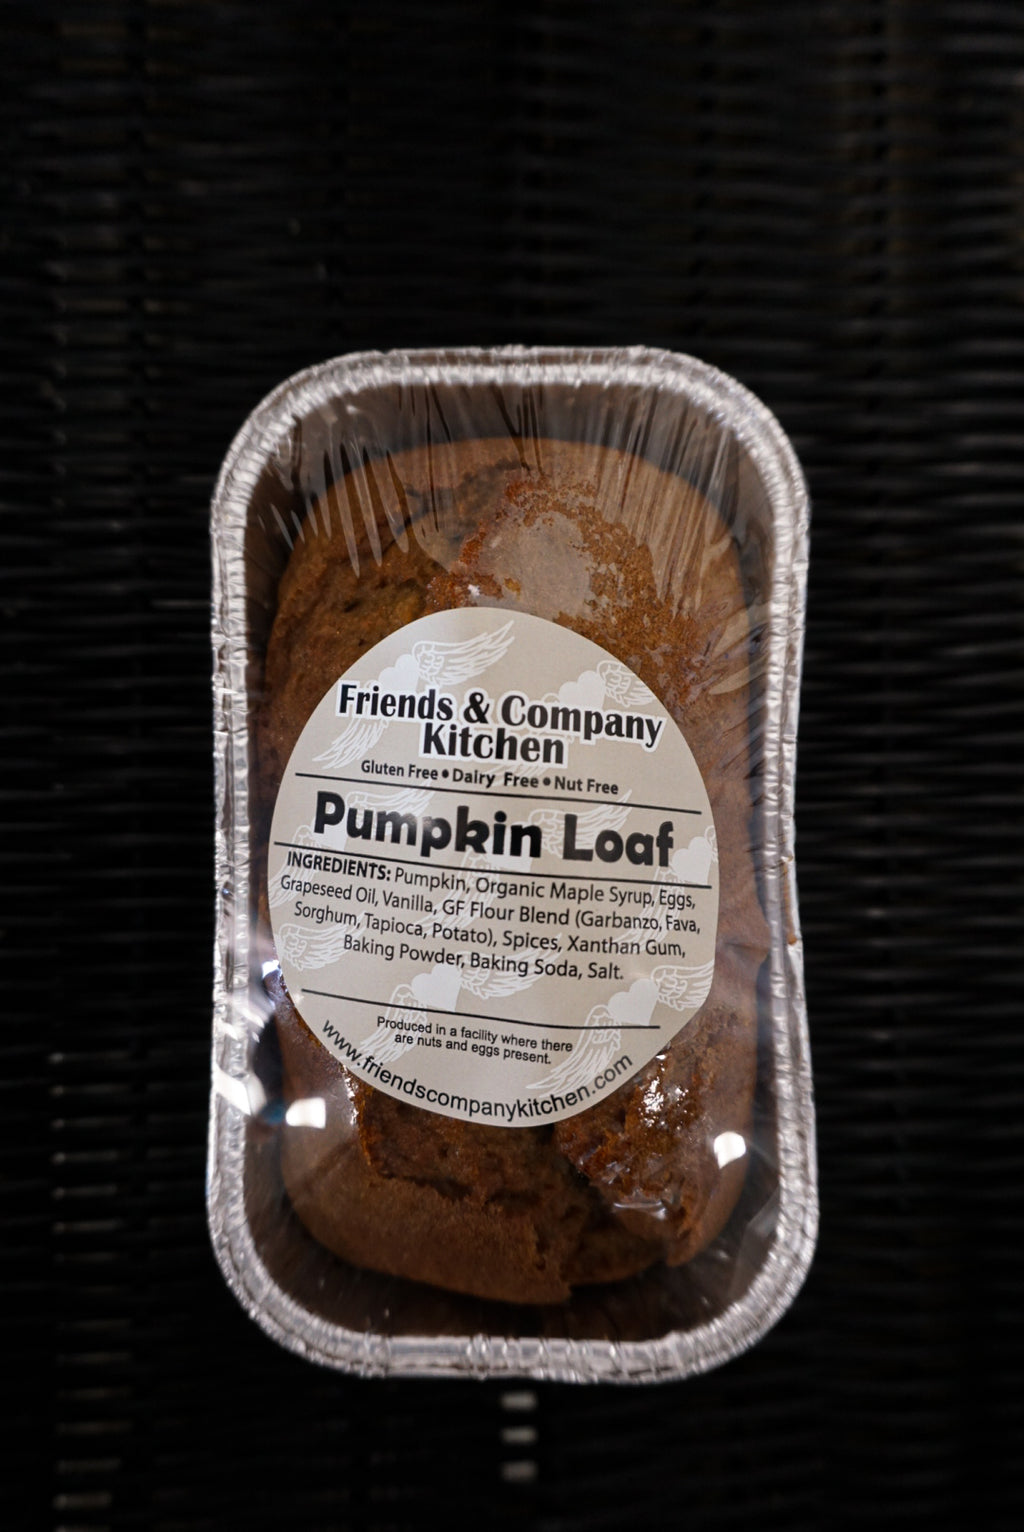 Friends & Company Kitchen Pumpkin Loaf